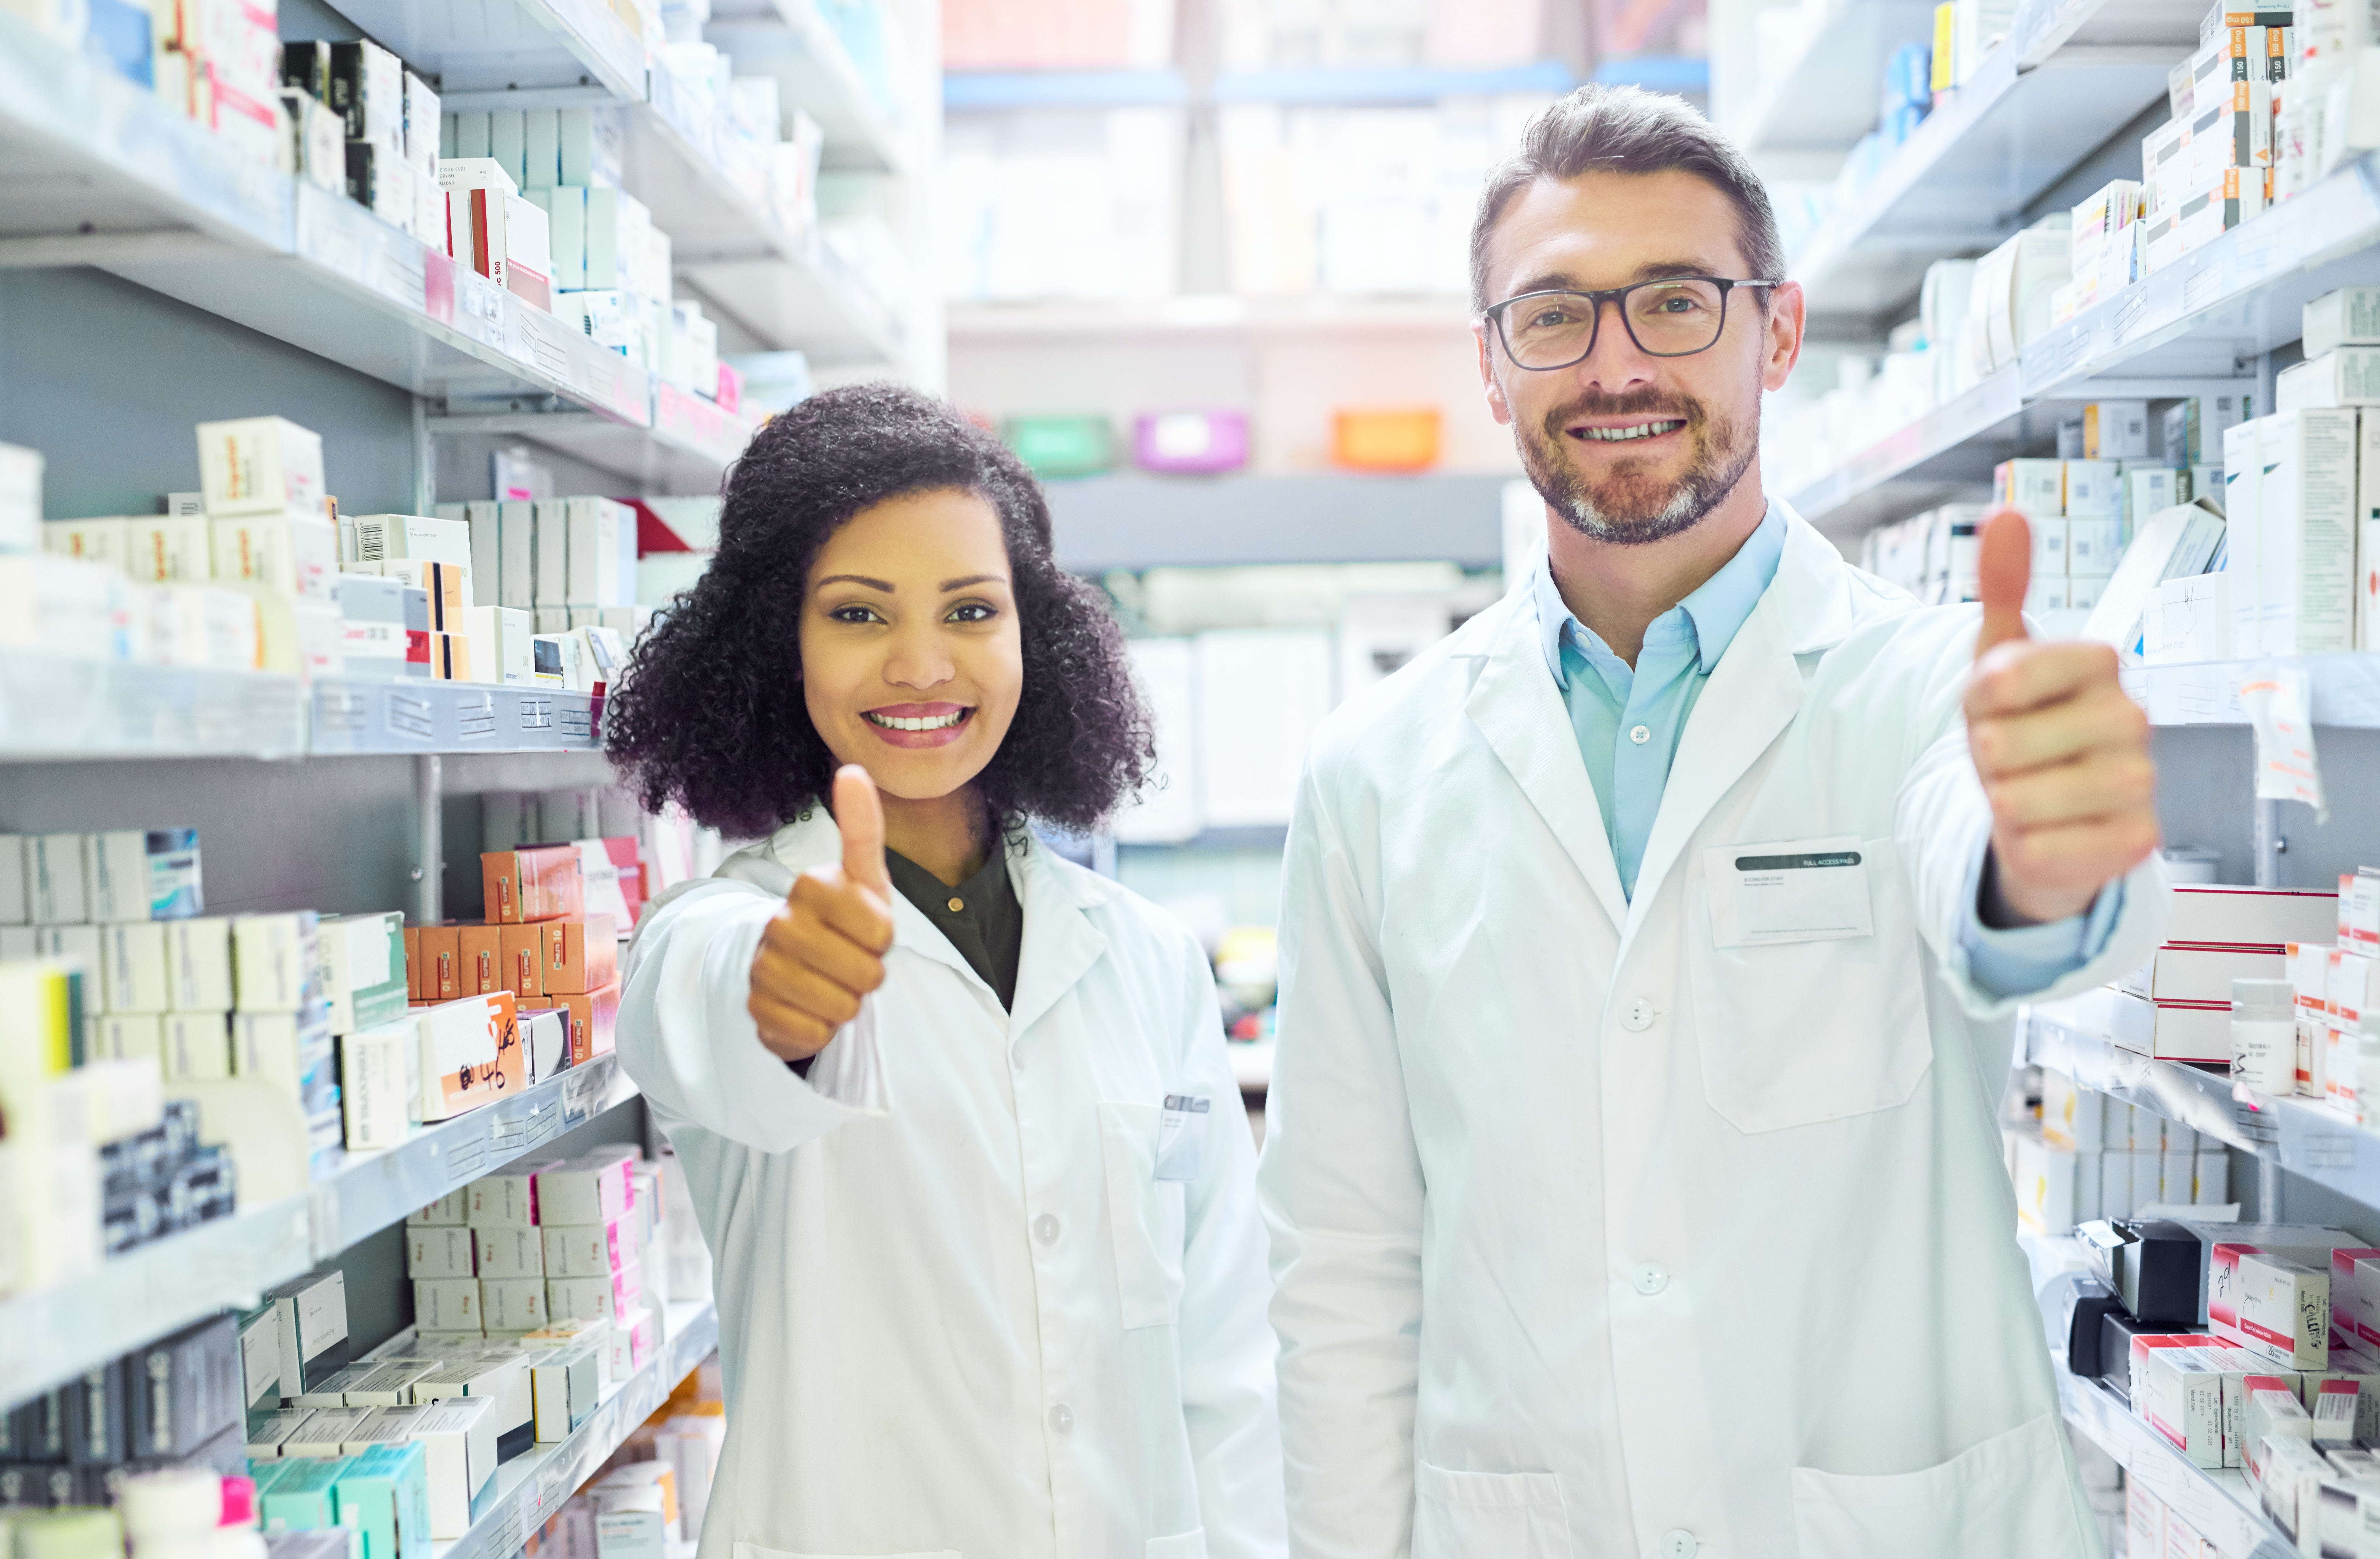 Portrait of a confident mature man and young woman showing thumbs up in a pharmacy